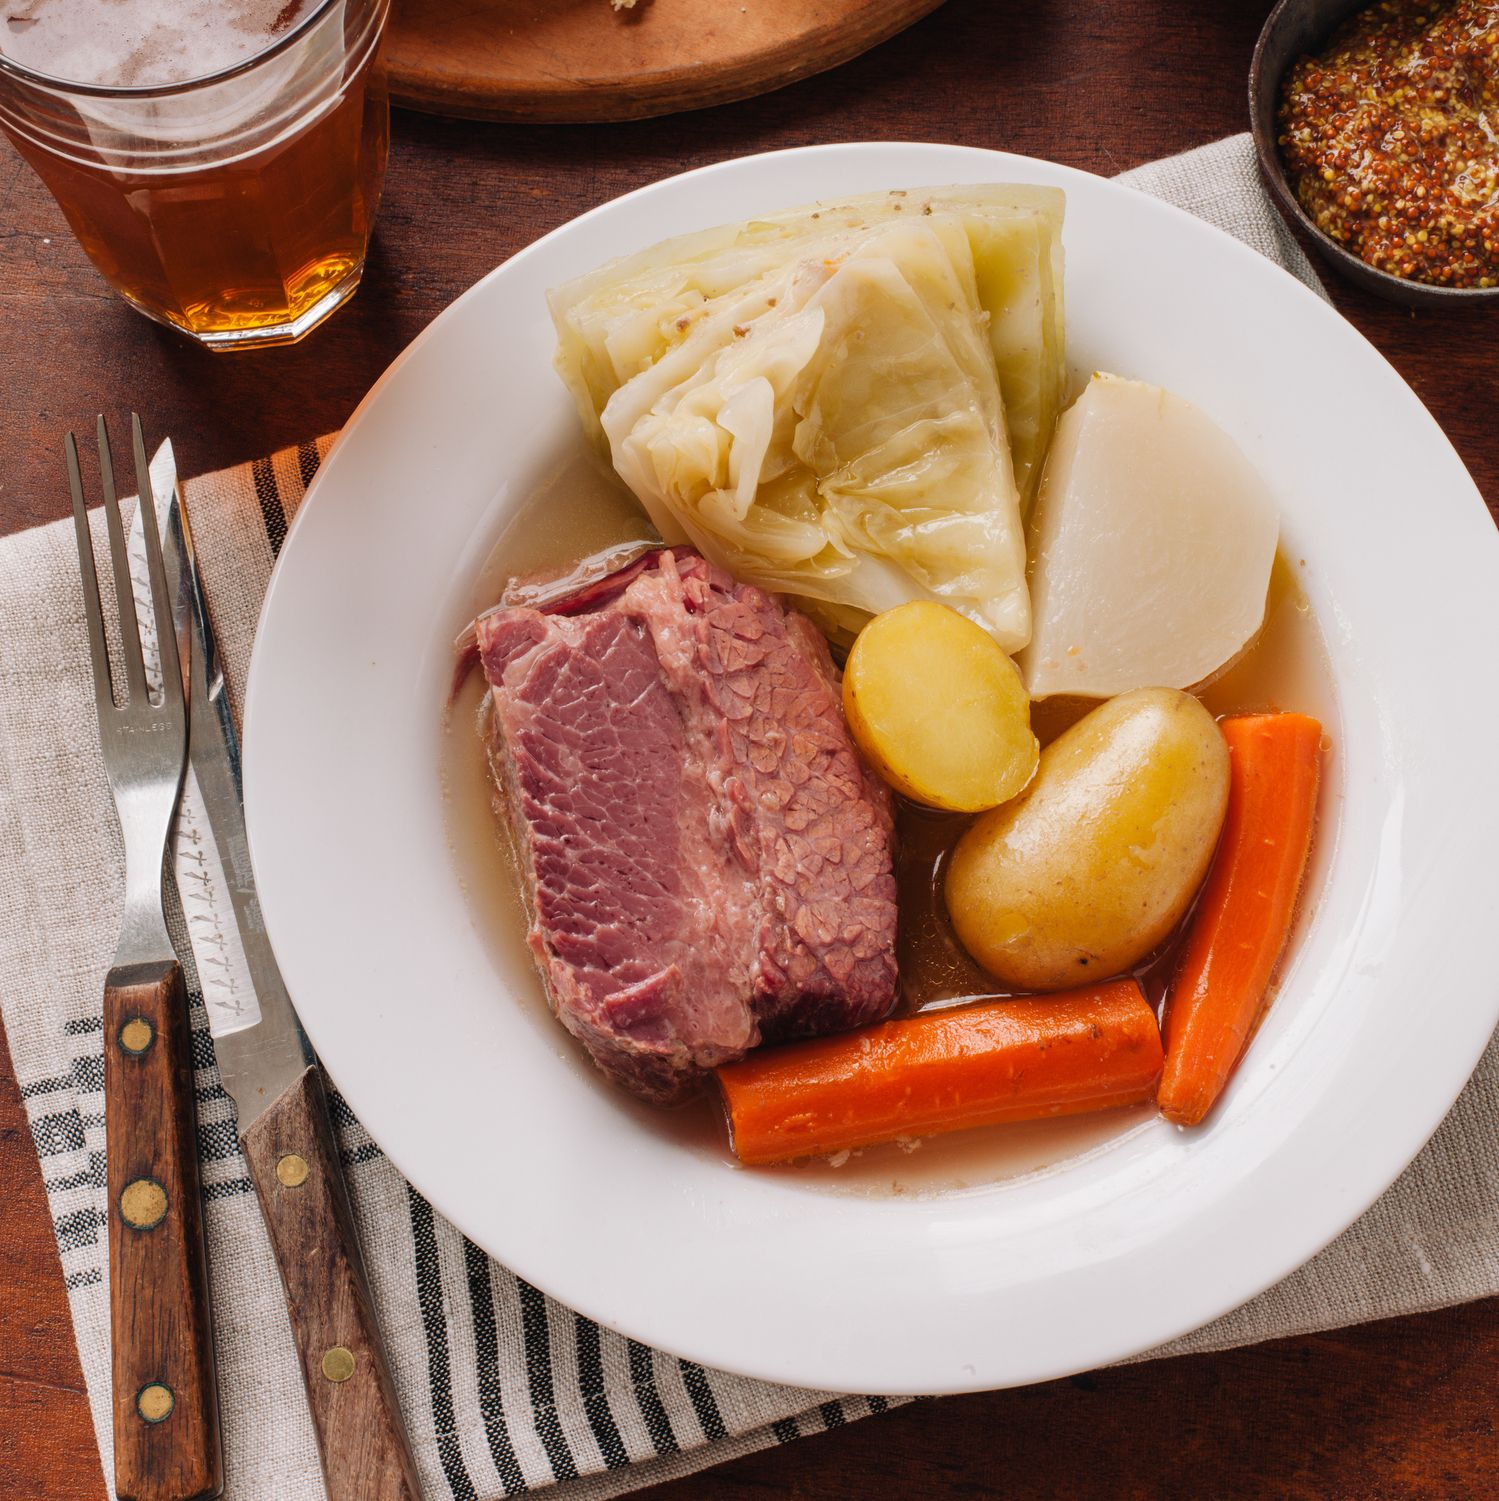 This Corned Beef and Cabbage Recipe Will Complete Your St. Patrick's Day Menu